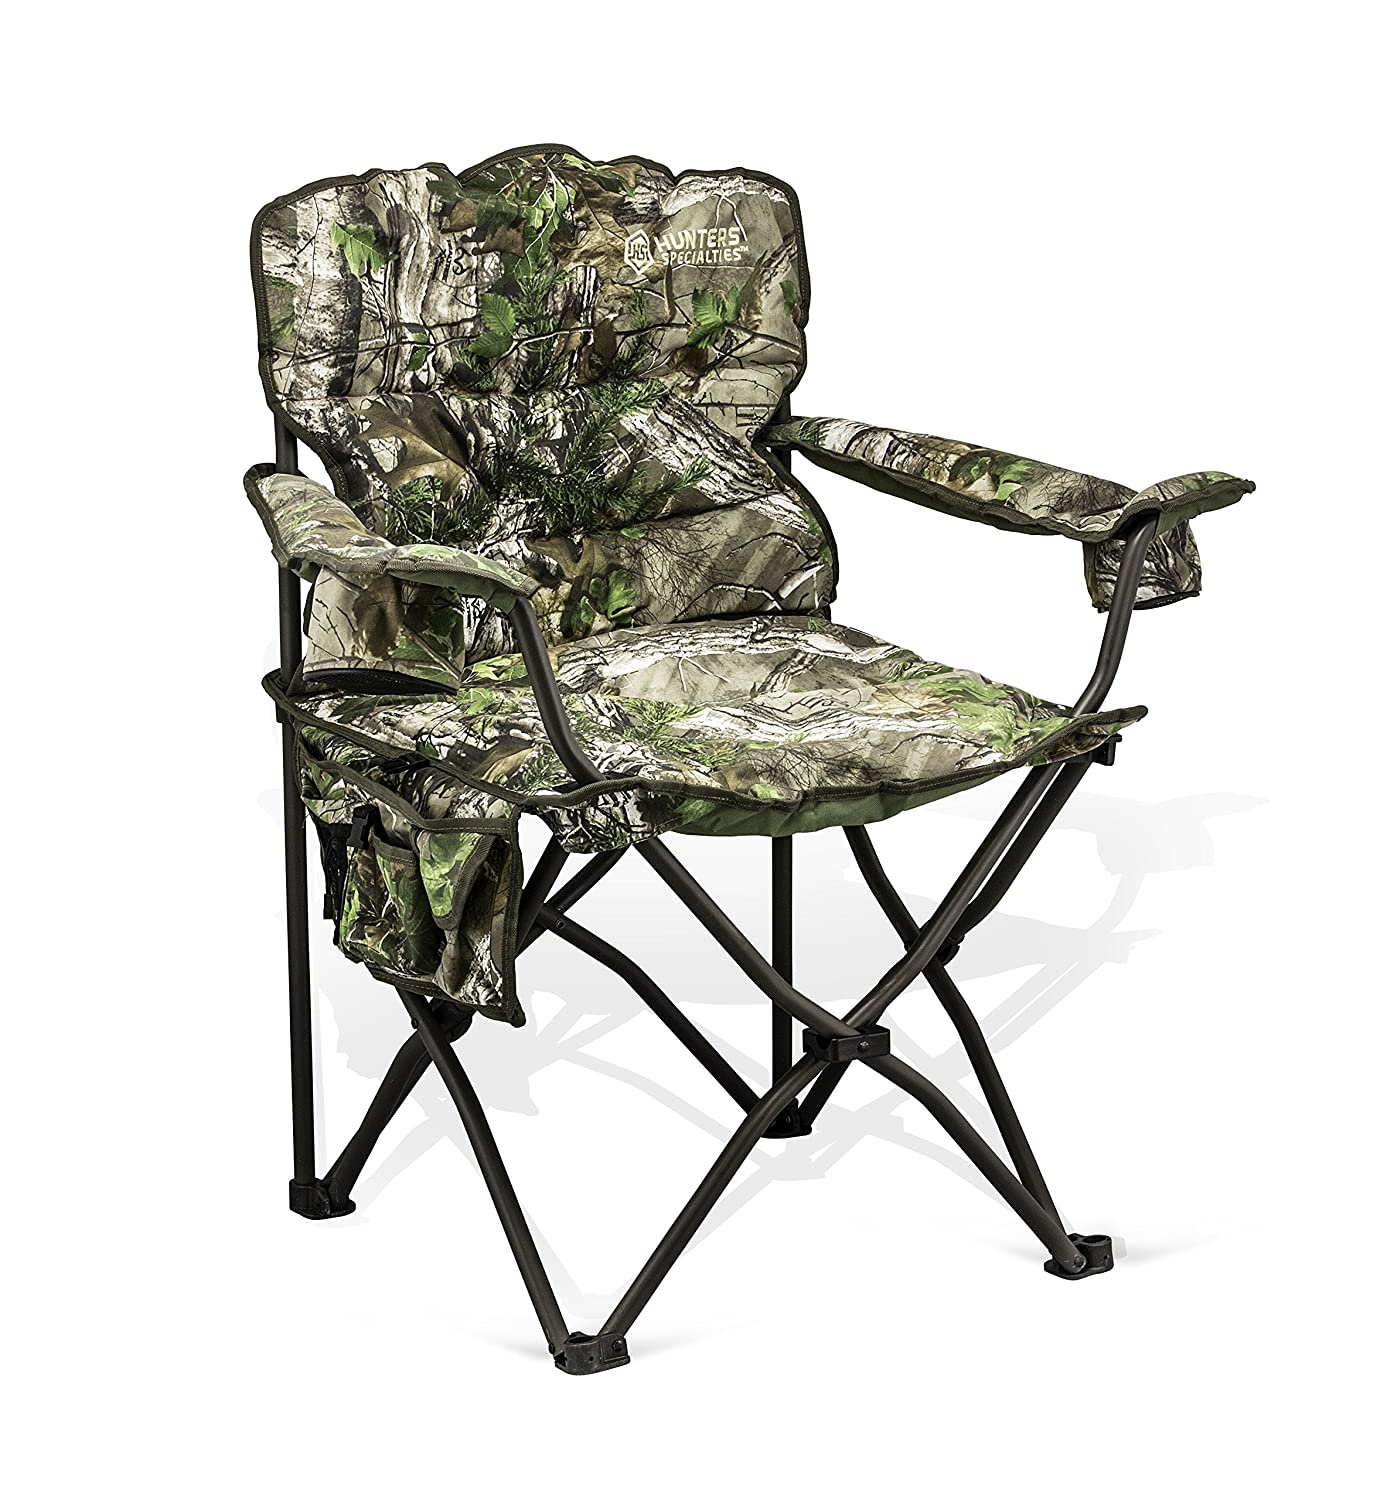 Hunters Specialties Deluxe Pillow Camo Chair Realtree Xtra Green